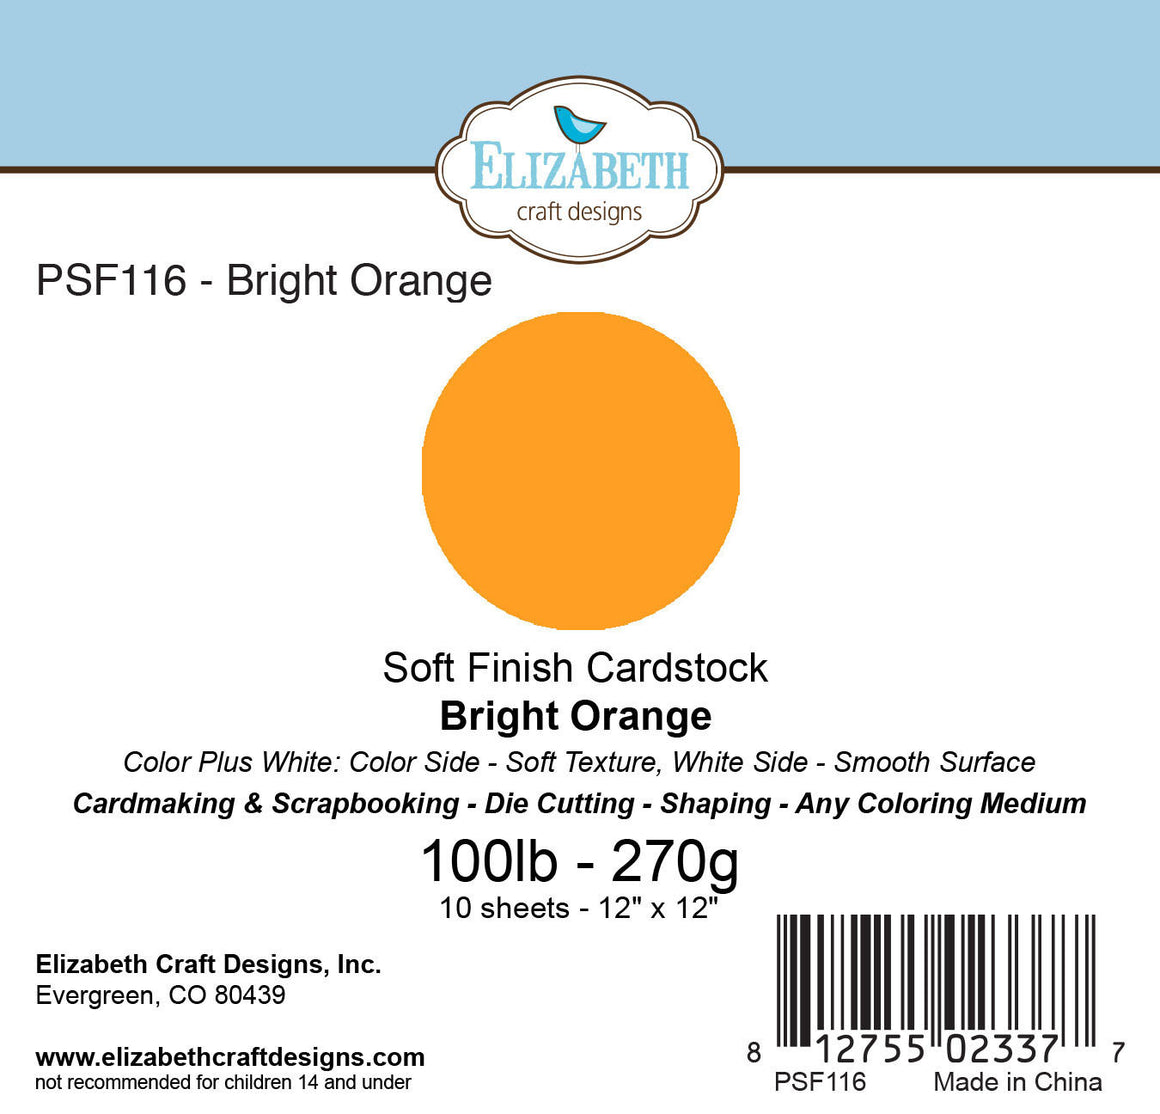 Soft Finish Cardstock, Bright Orange